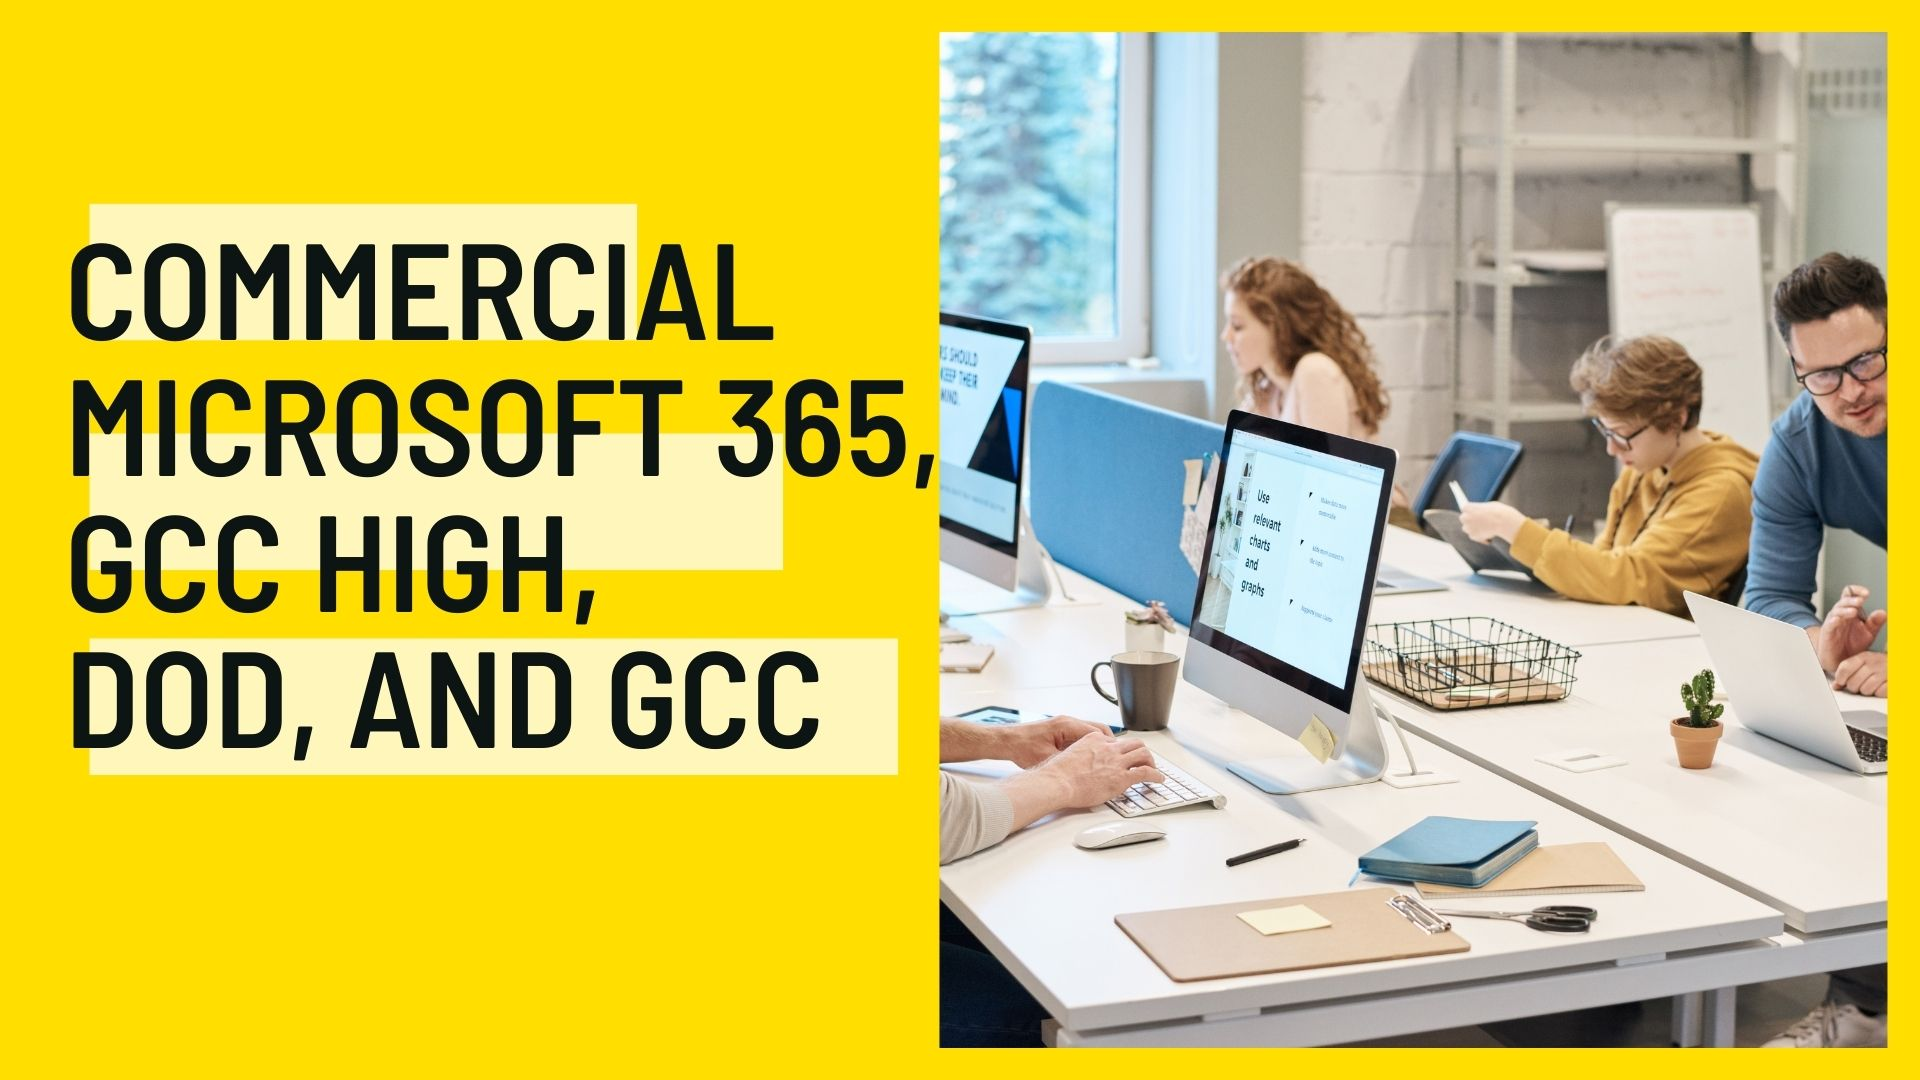 Understanding GCC High, GCC, DOD, and Commercial Microsoft 365 - thumb image